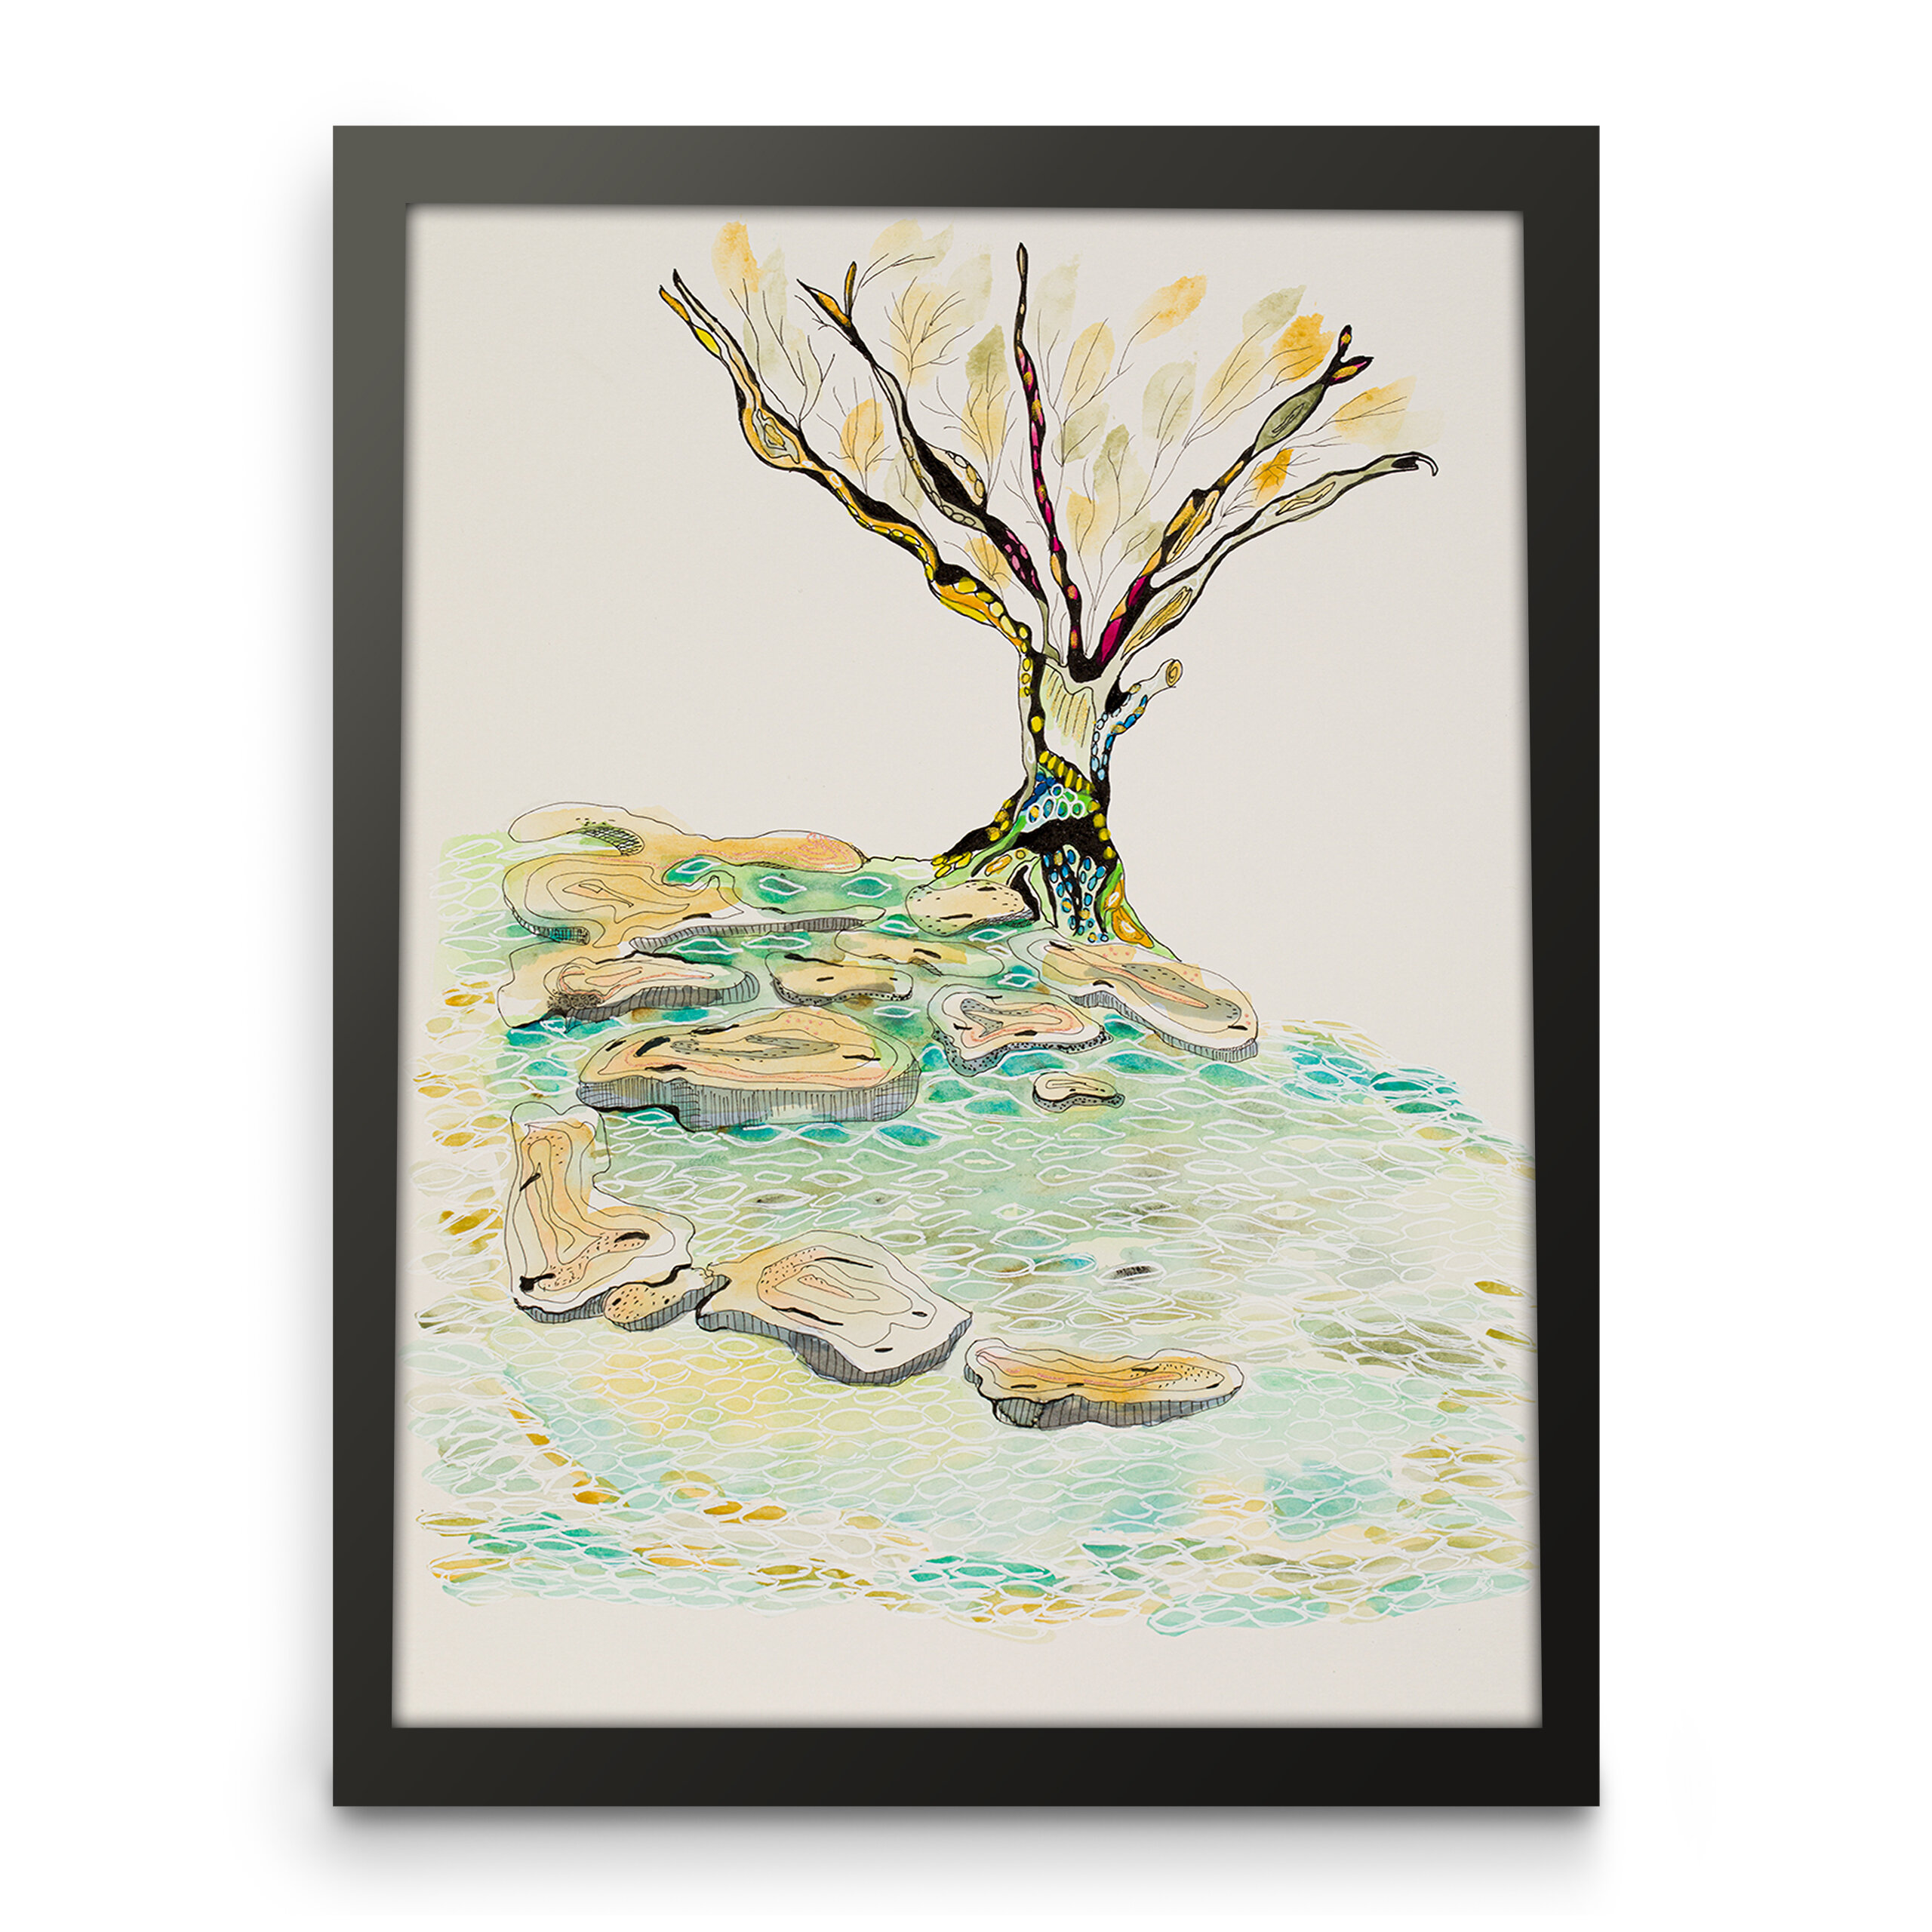 Nature art, Landscape art, Tree on a hill, Framed front view